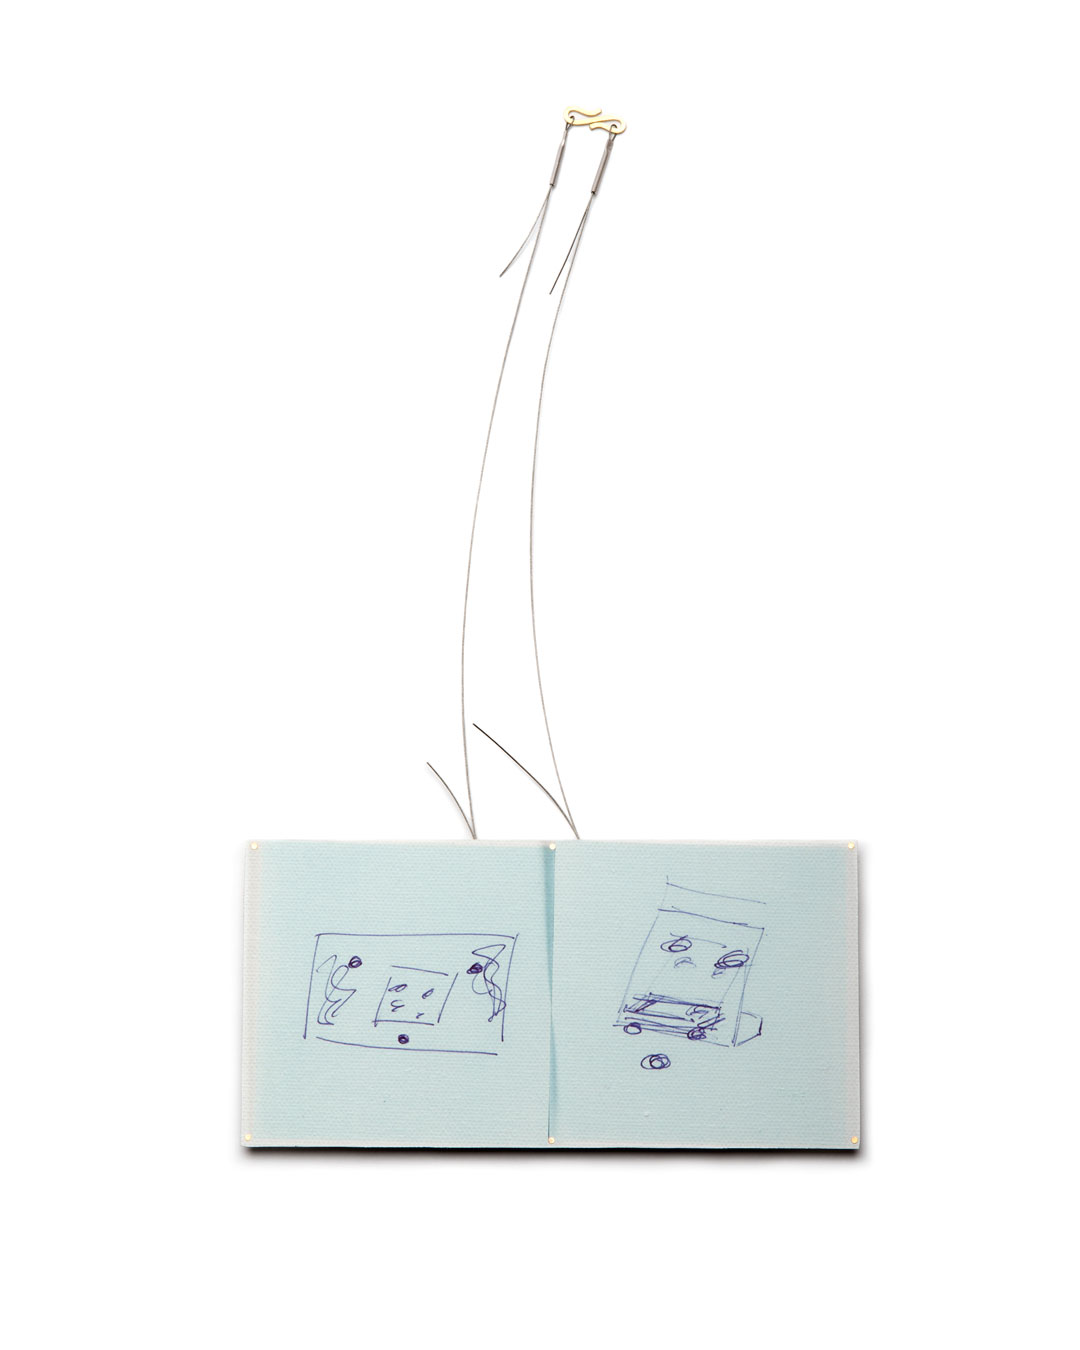 Robert Smit, Design for the Next Piece, 2019, necklace; photo of a drawing on canvas on tinplate, steel, silver, gold, 160 x 80 x 8 mm, €2900